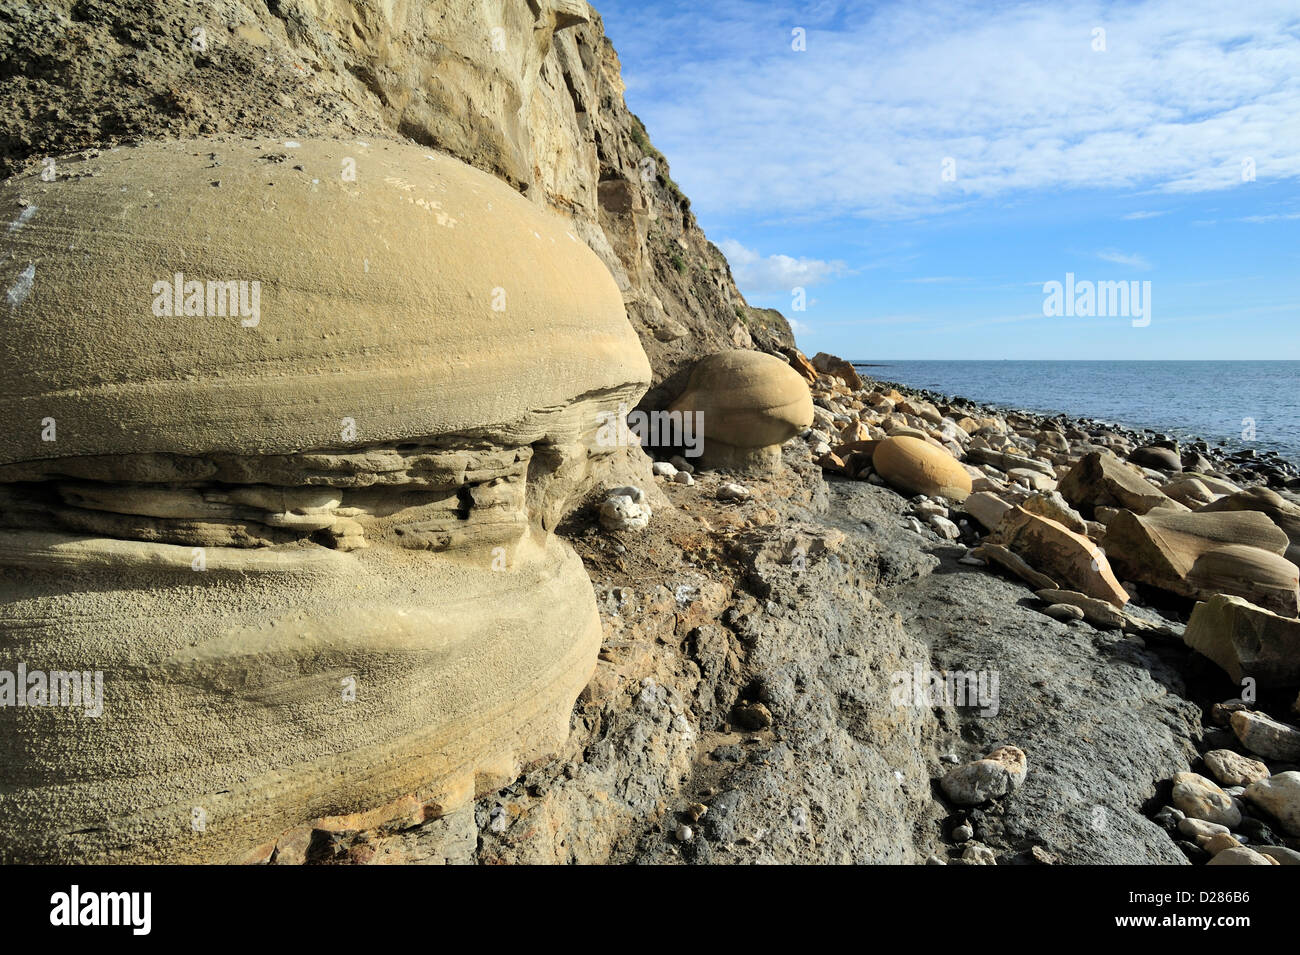 Rounded nodules on beach at Osmington Mills come from the Bencliff Grit Formation, Jurassic Coast, Dorset, southern - Stock Image